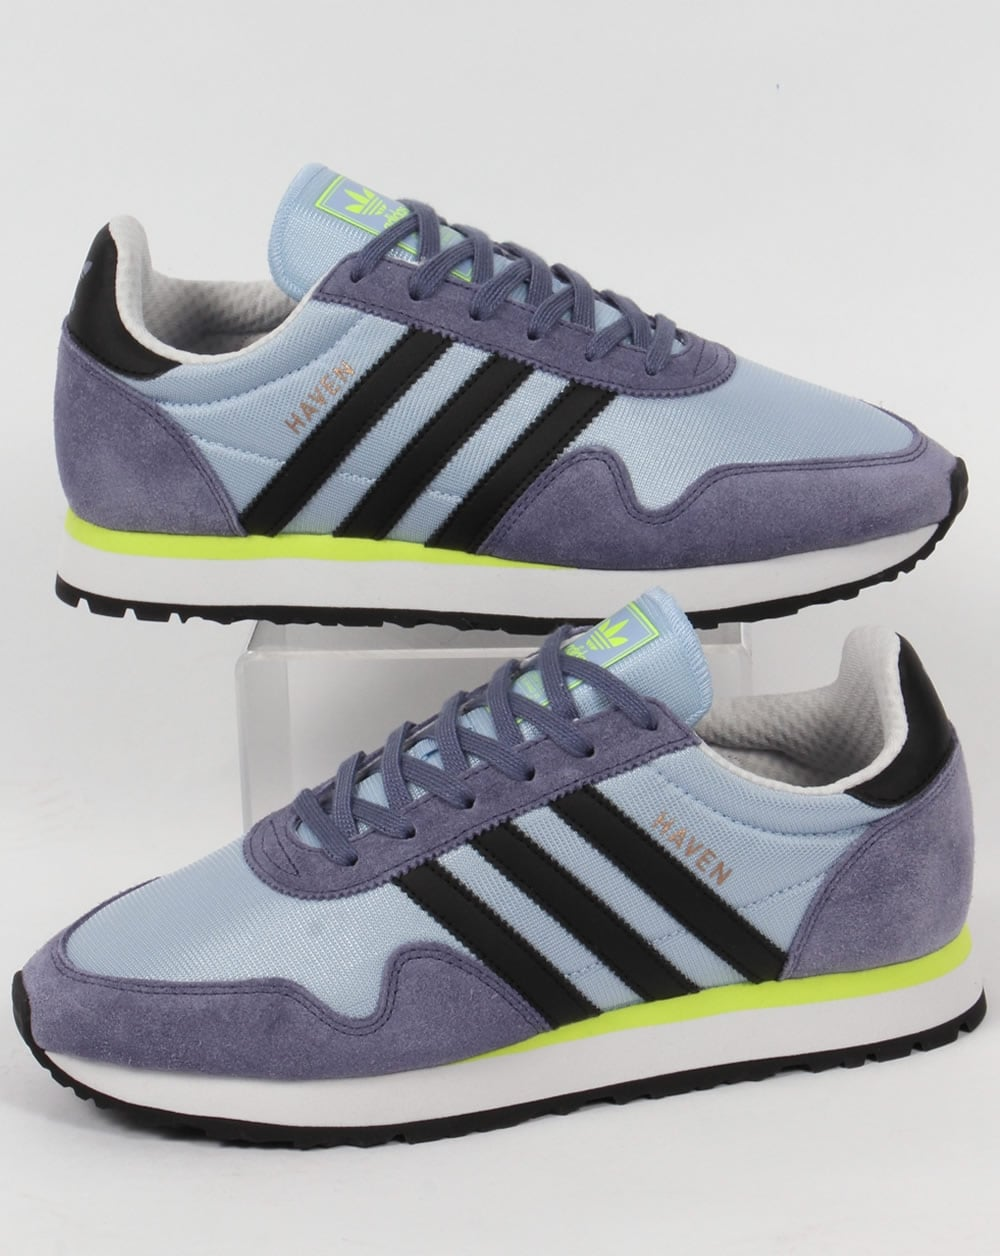 Adidas Haven Trainers Soft Blue/Black